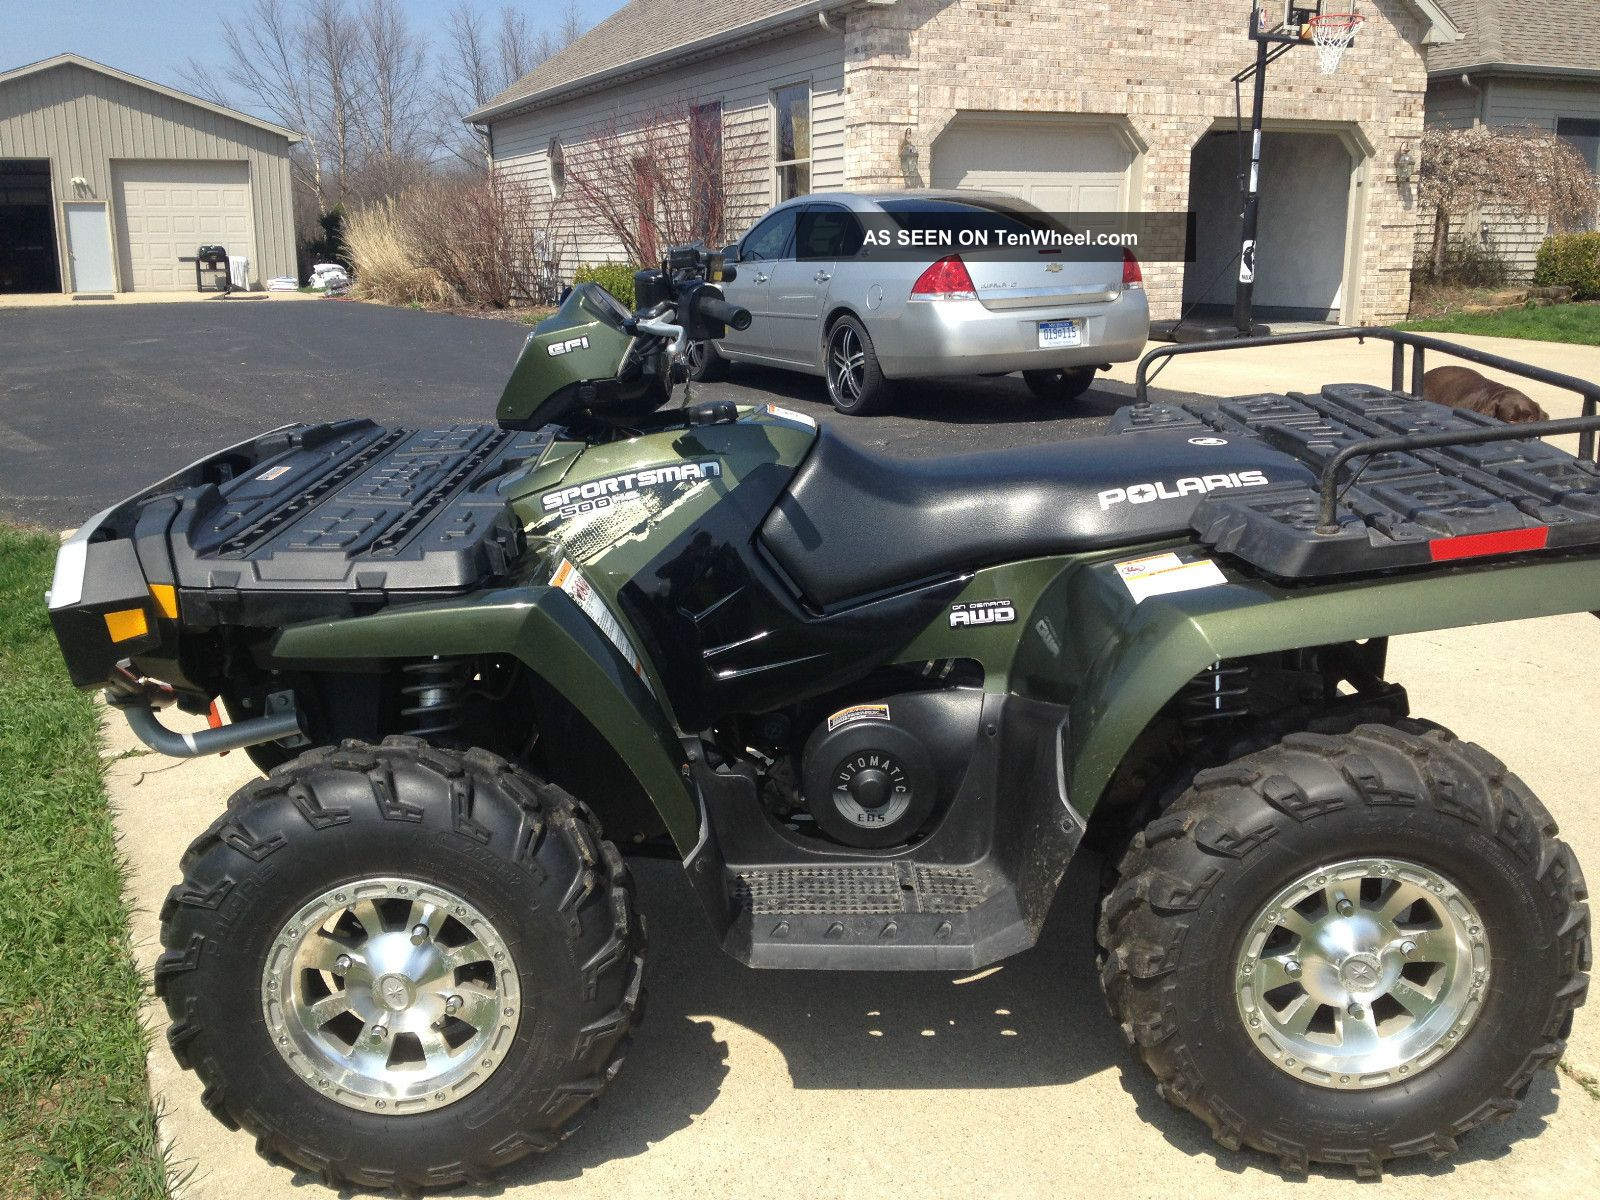 Polaris Rzr For Sale Tennessee >> Pin 2013 Polaris Sportsman 500 Ho For Sale In Knoxville Tennessee on Pinterest